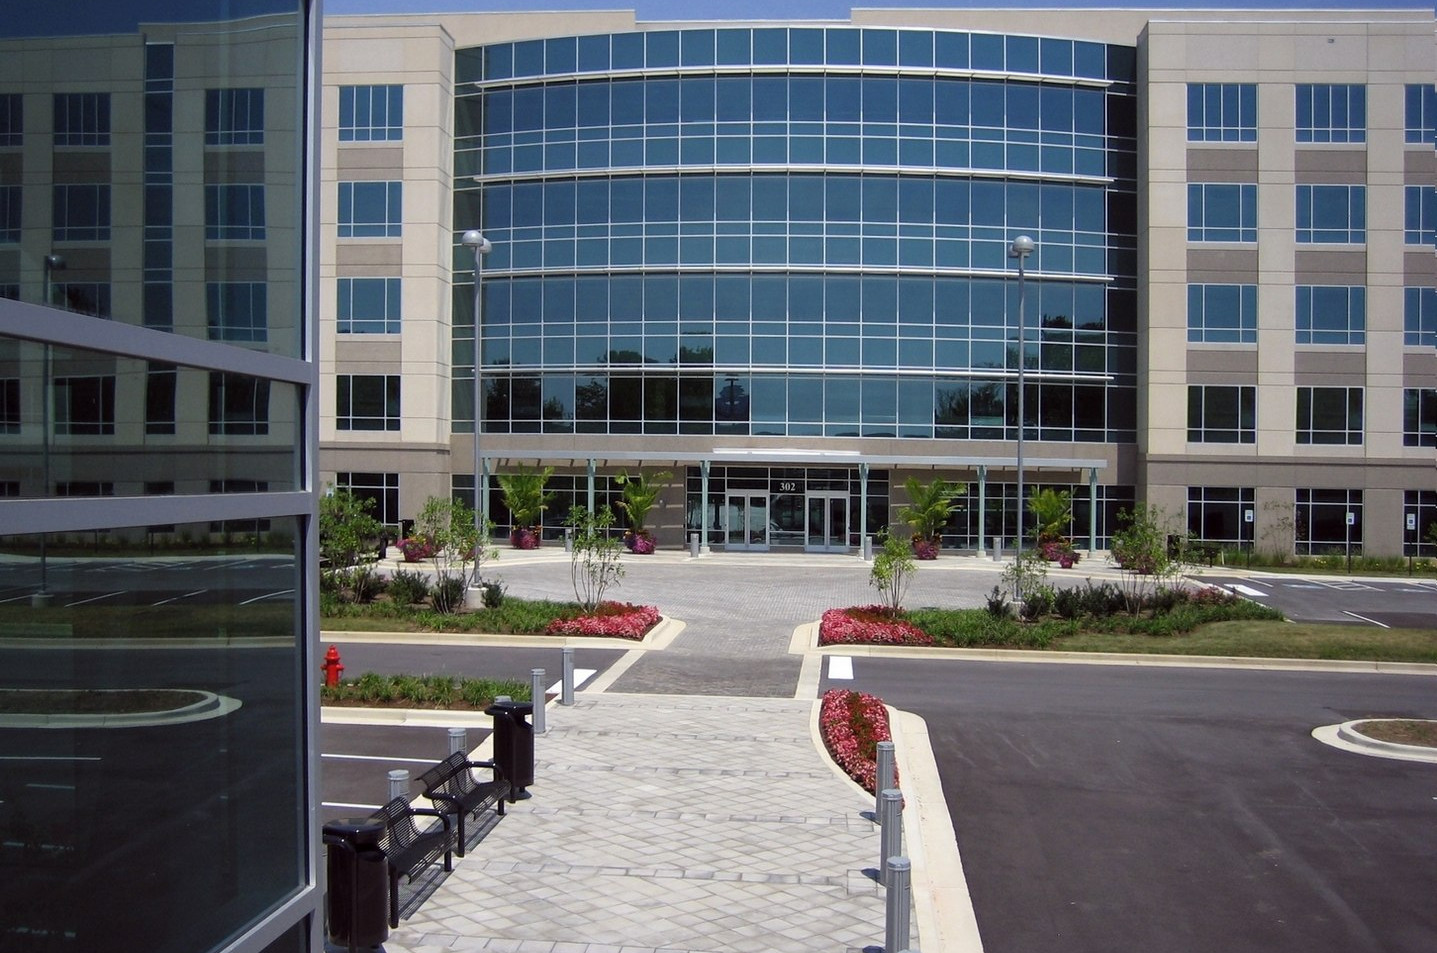 302 National Business Parkway - Exterior